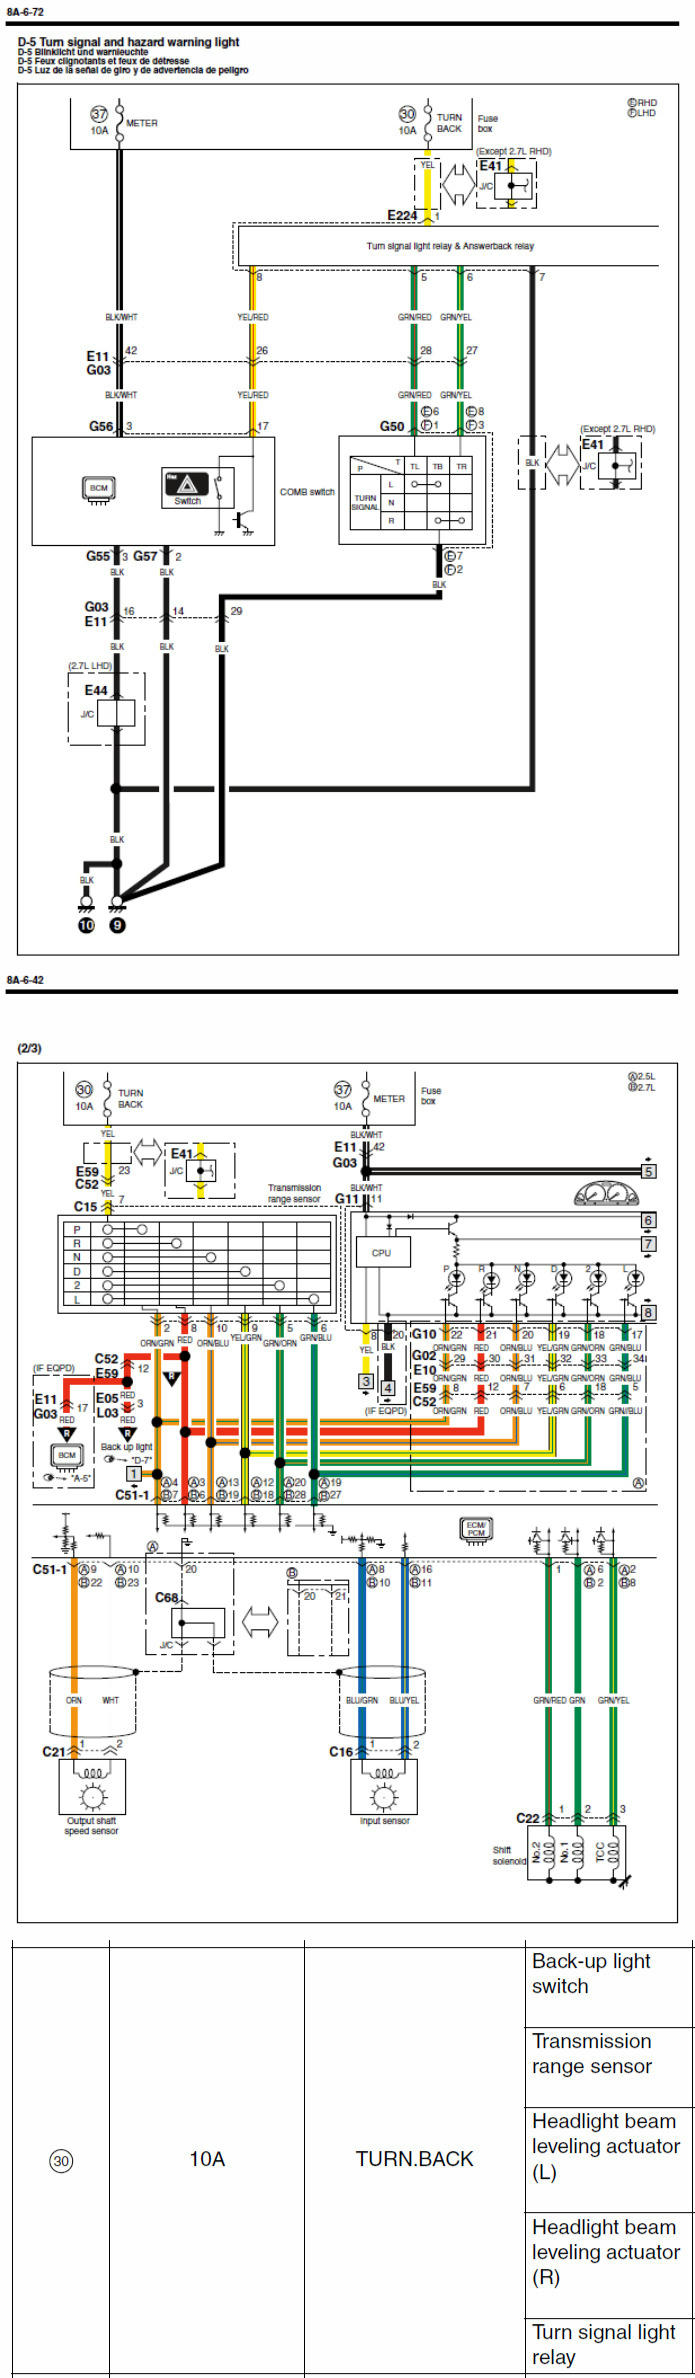 2003 xl7 fuse box diagram suzuki forums suzuki forums